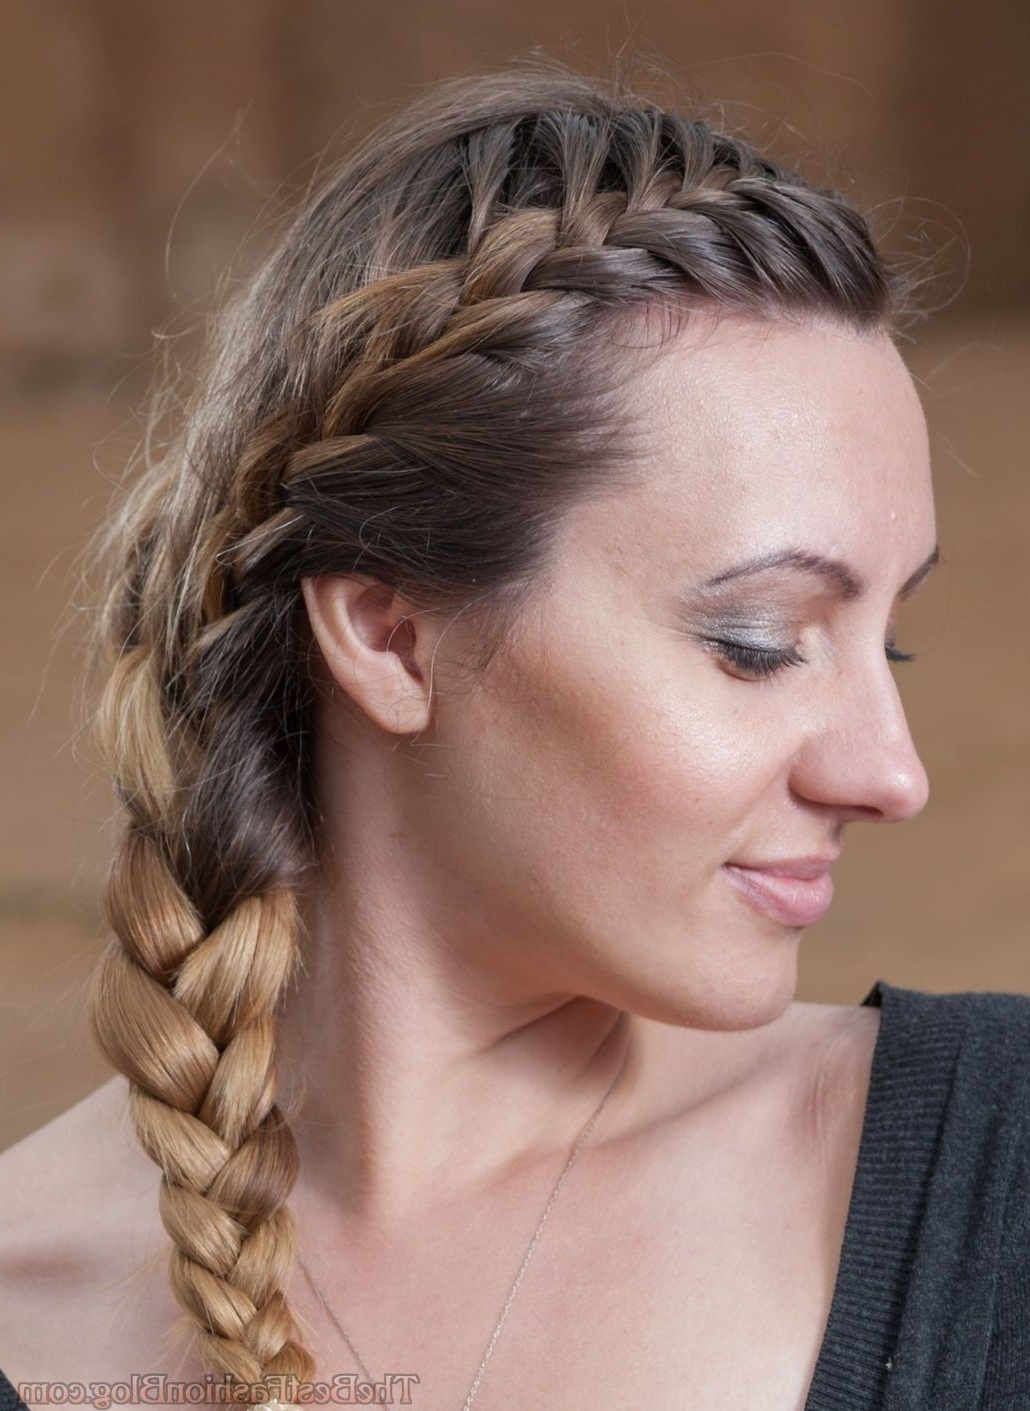 Widely Used Side Braided Ponytail Hairstyles Intended For Braided Ponytail Hairstyles (View 20 of 20)